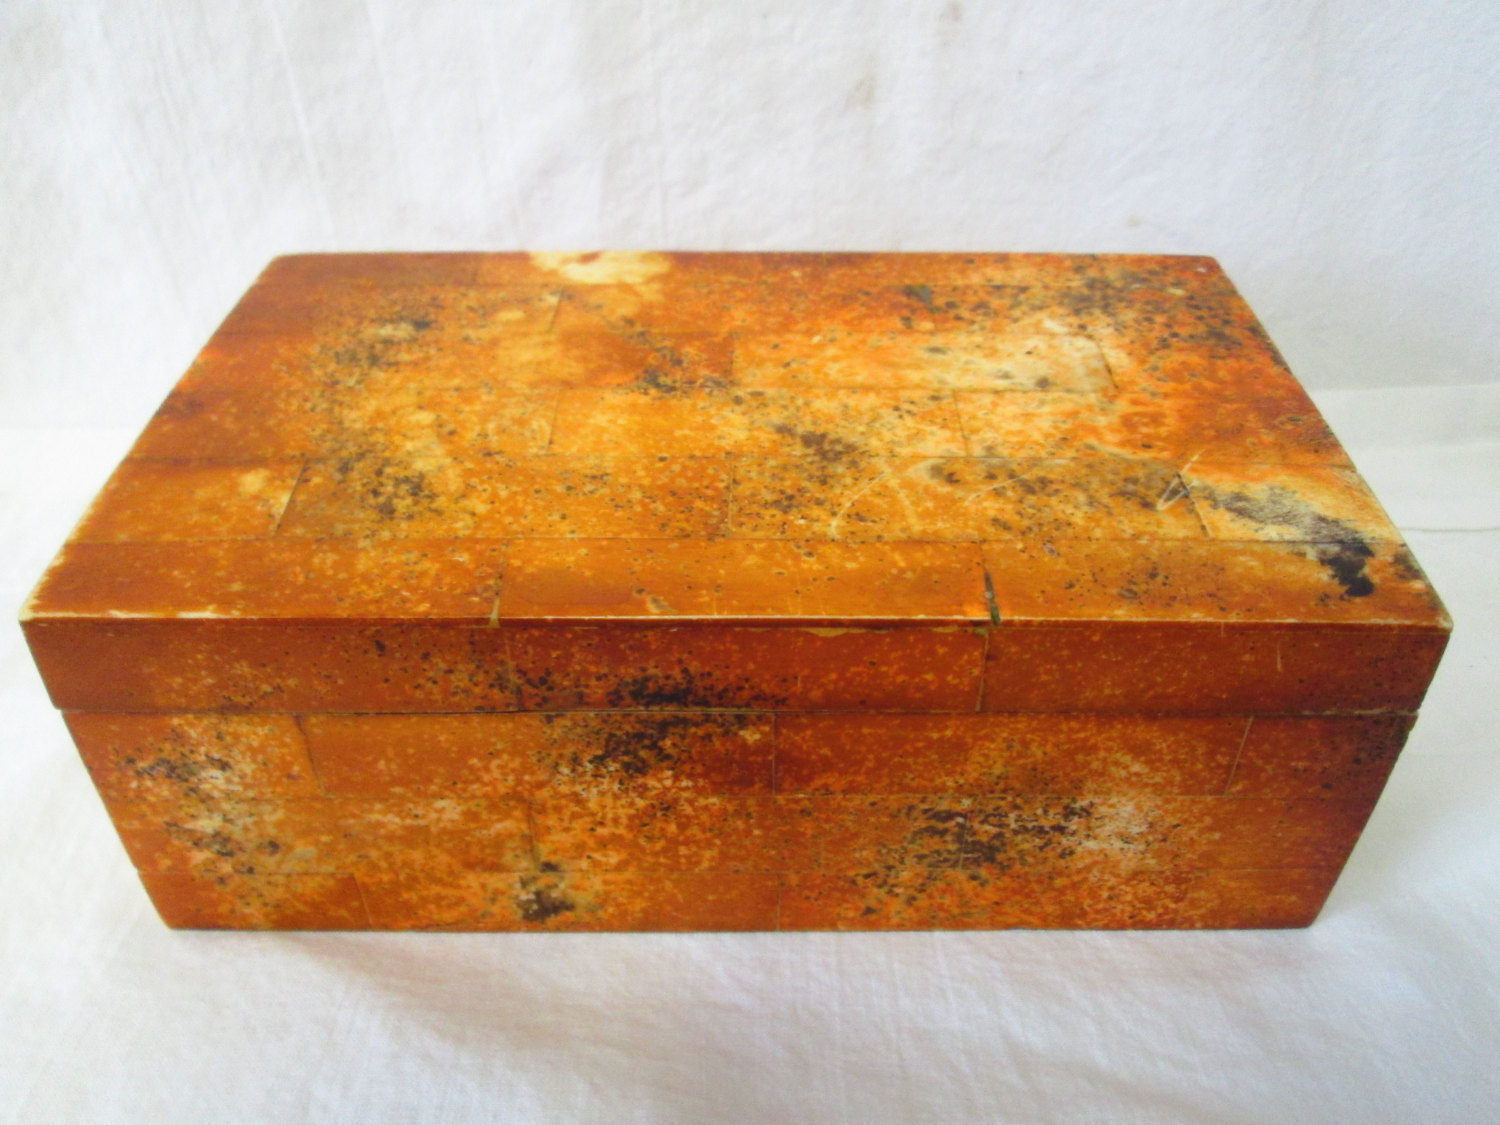 Vintage Wooden Box Brick Look exterior Wooden inside Rust Colored exterior